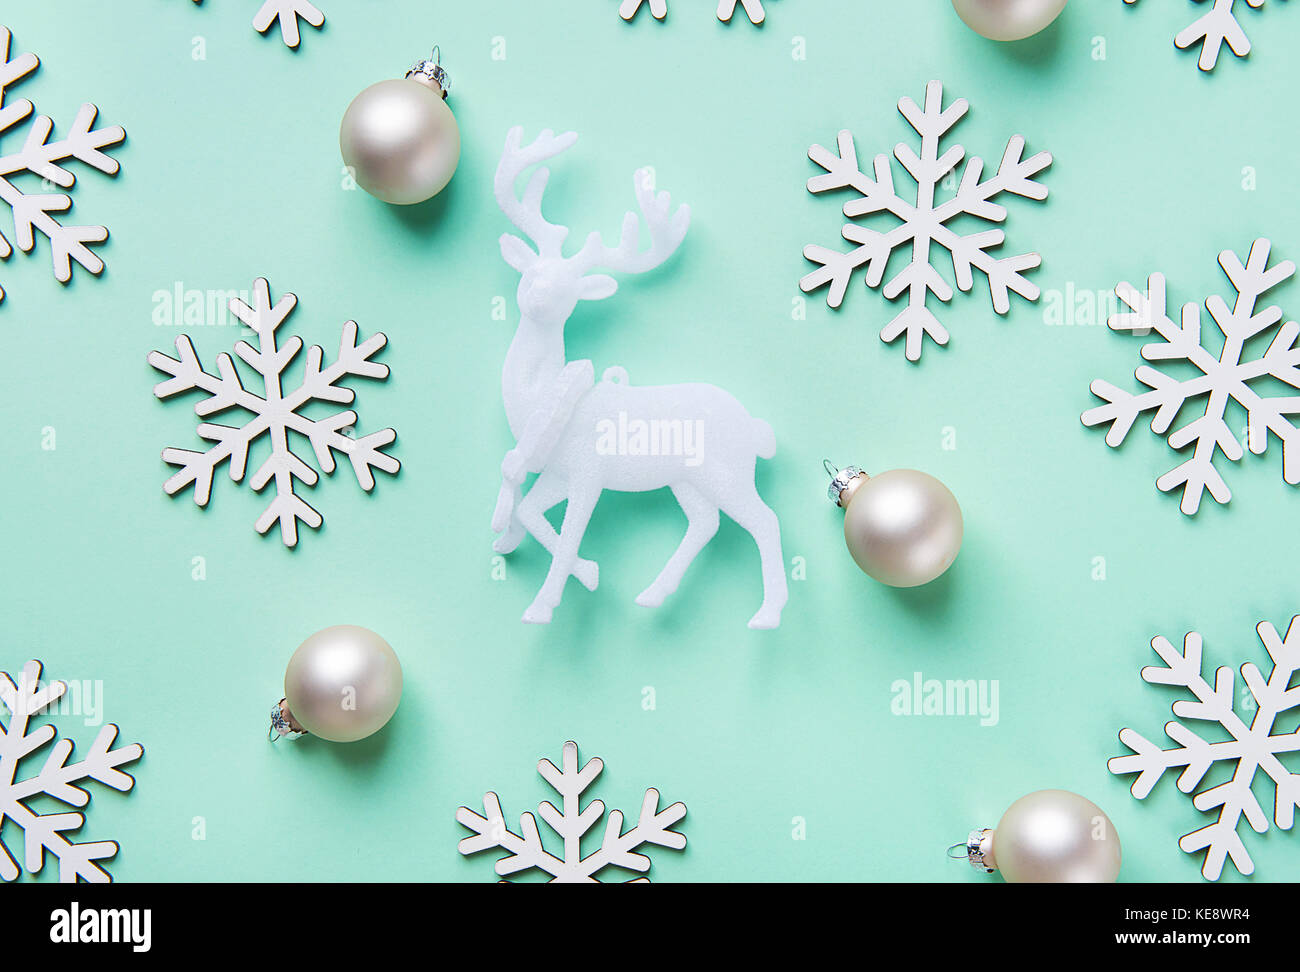 Elegant Christmas New Year Greeting Card Poster White Reindeer Snow Flakes Balls Pattern on Turquoise Blue Background. - Stock Image